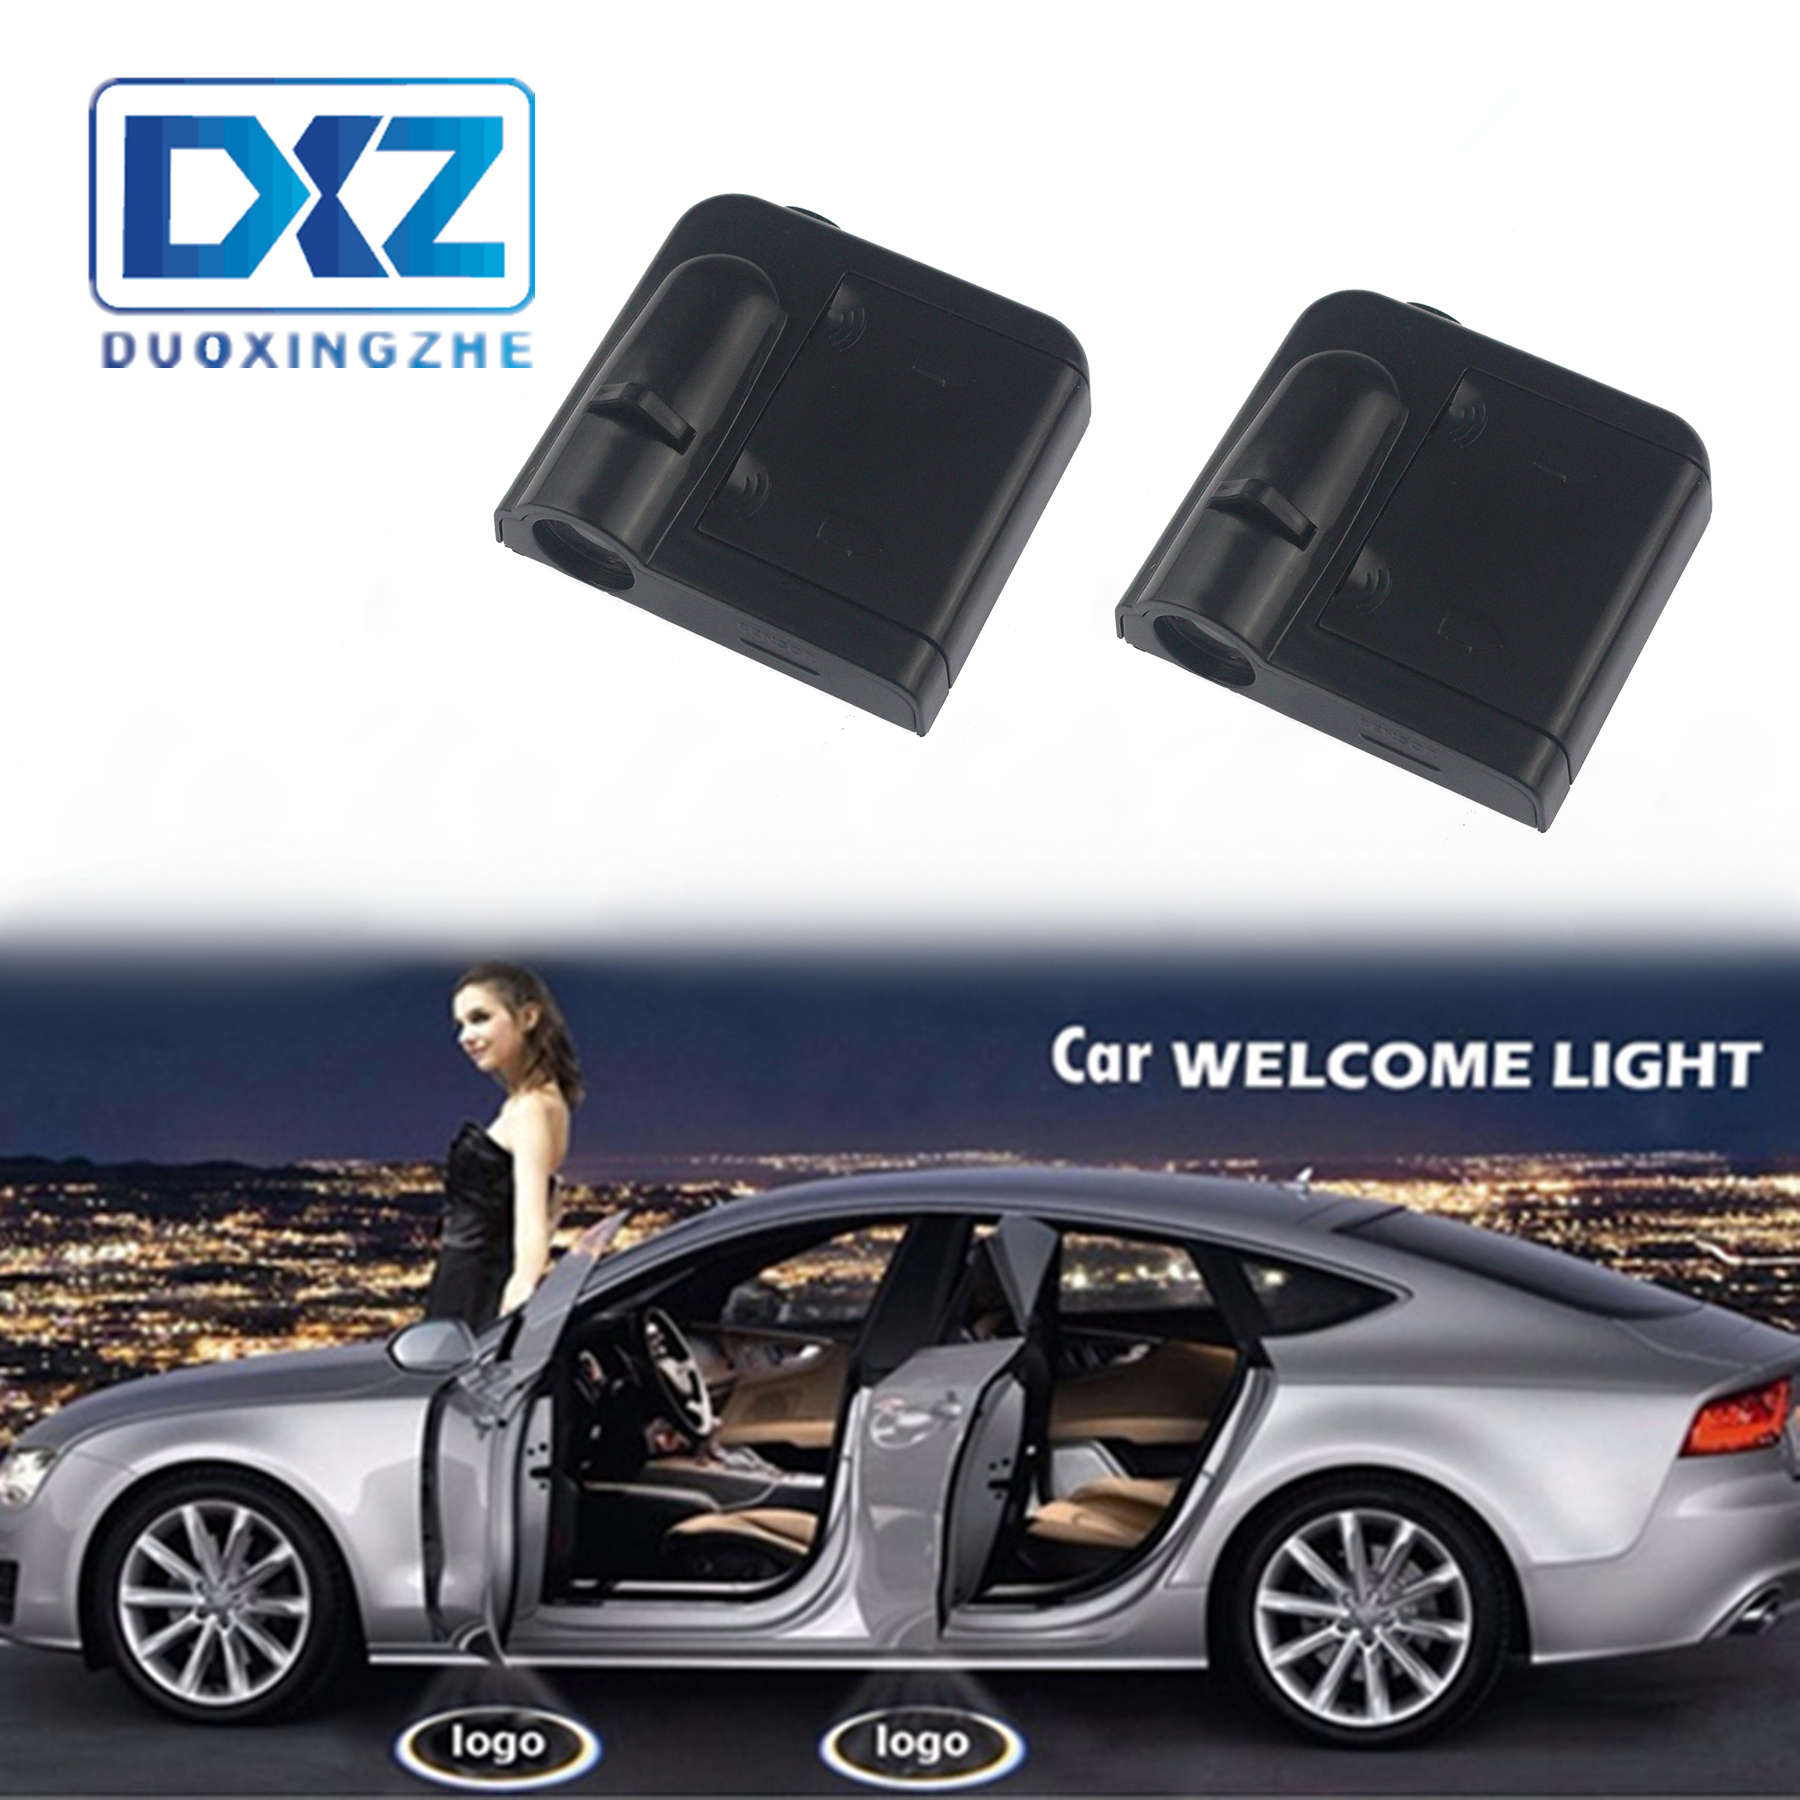 2X Car Door Projector Foot Lighting Welcome Laser Logo Ghost Shadow LED For Fiat Opel Suzuki Tesla Roewe Chrysler Volvo Mazda VW